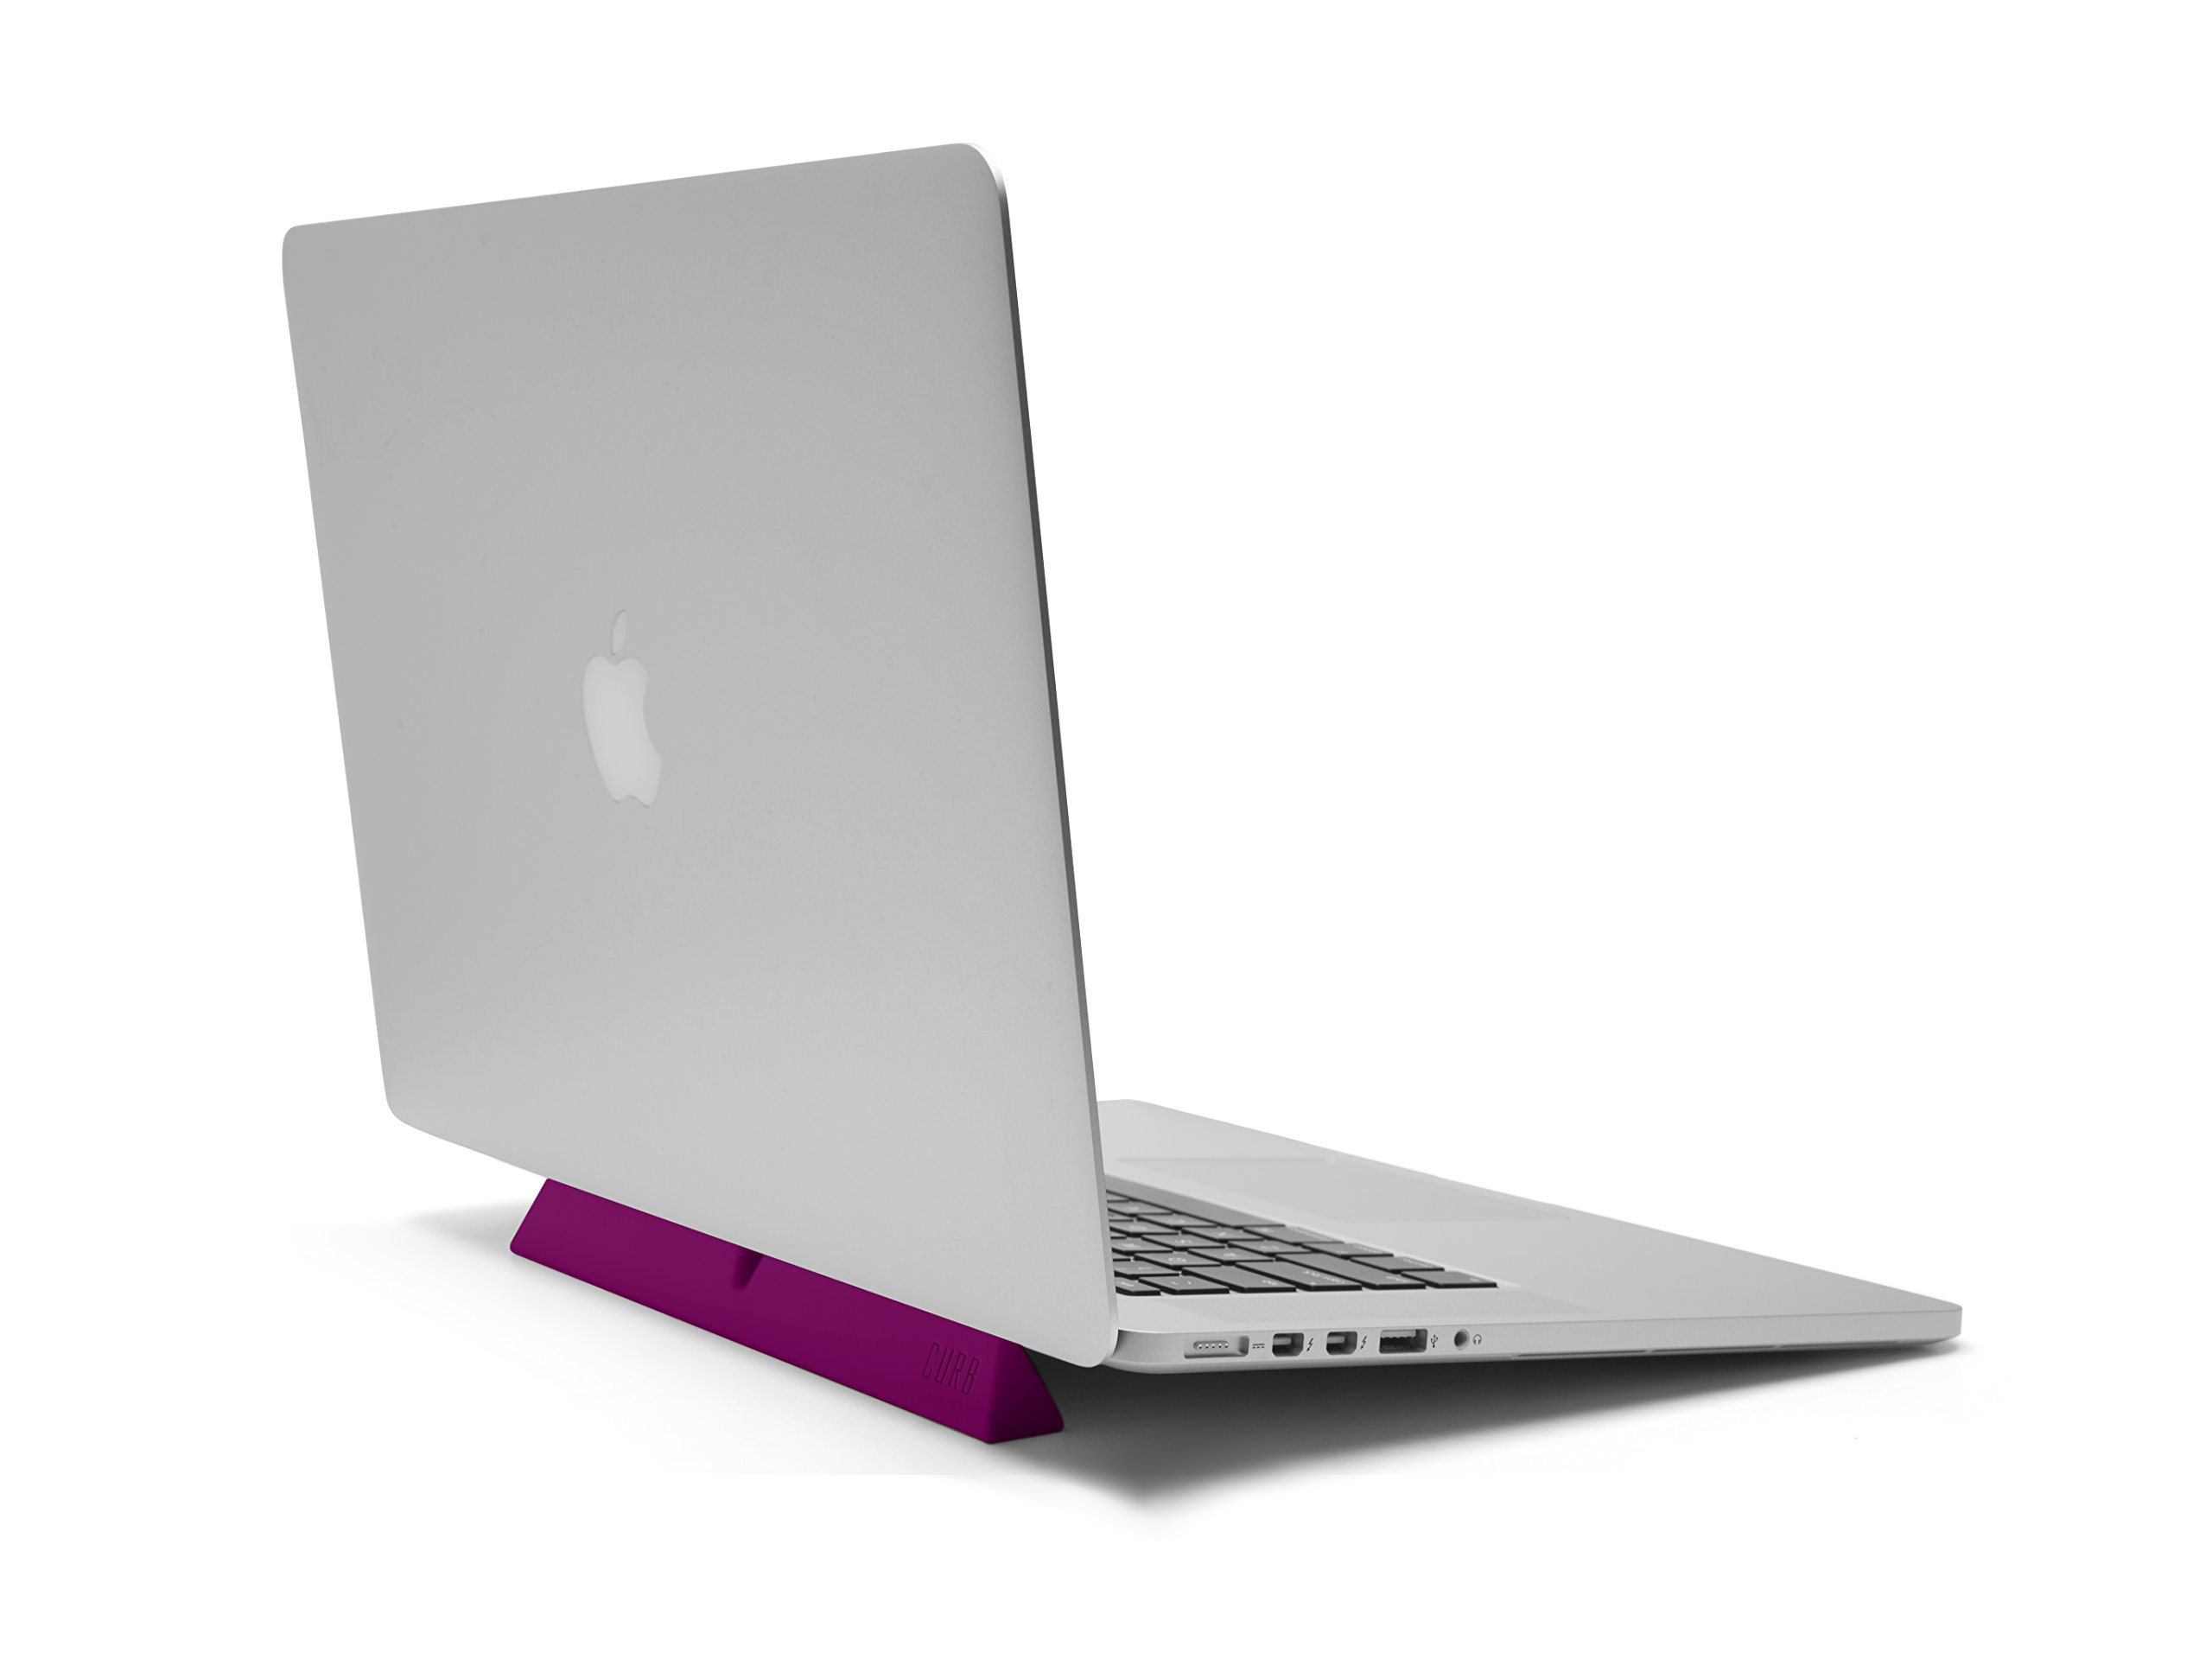 designed by many, CURB Universal & Portable Ergonomic Laptop Stand, Lightweight Dual Viewing Position, Pink by designed by many (Image #2)